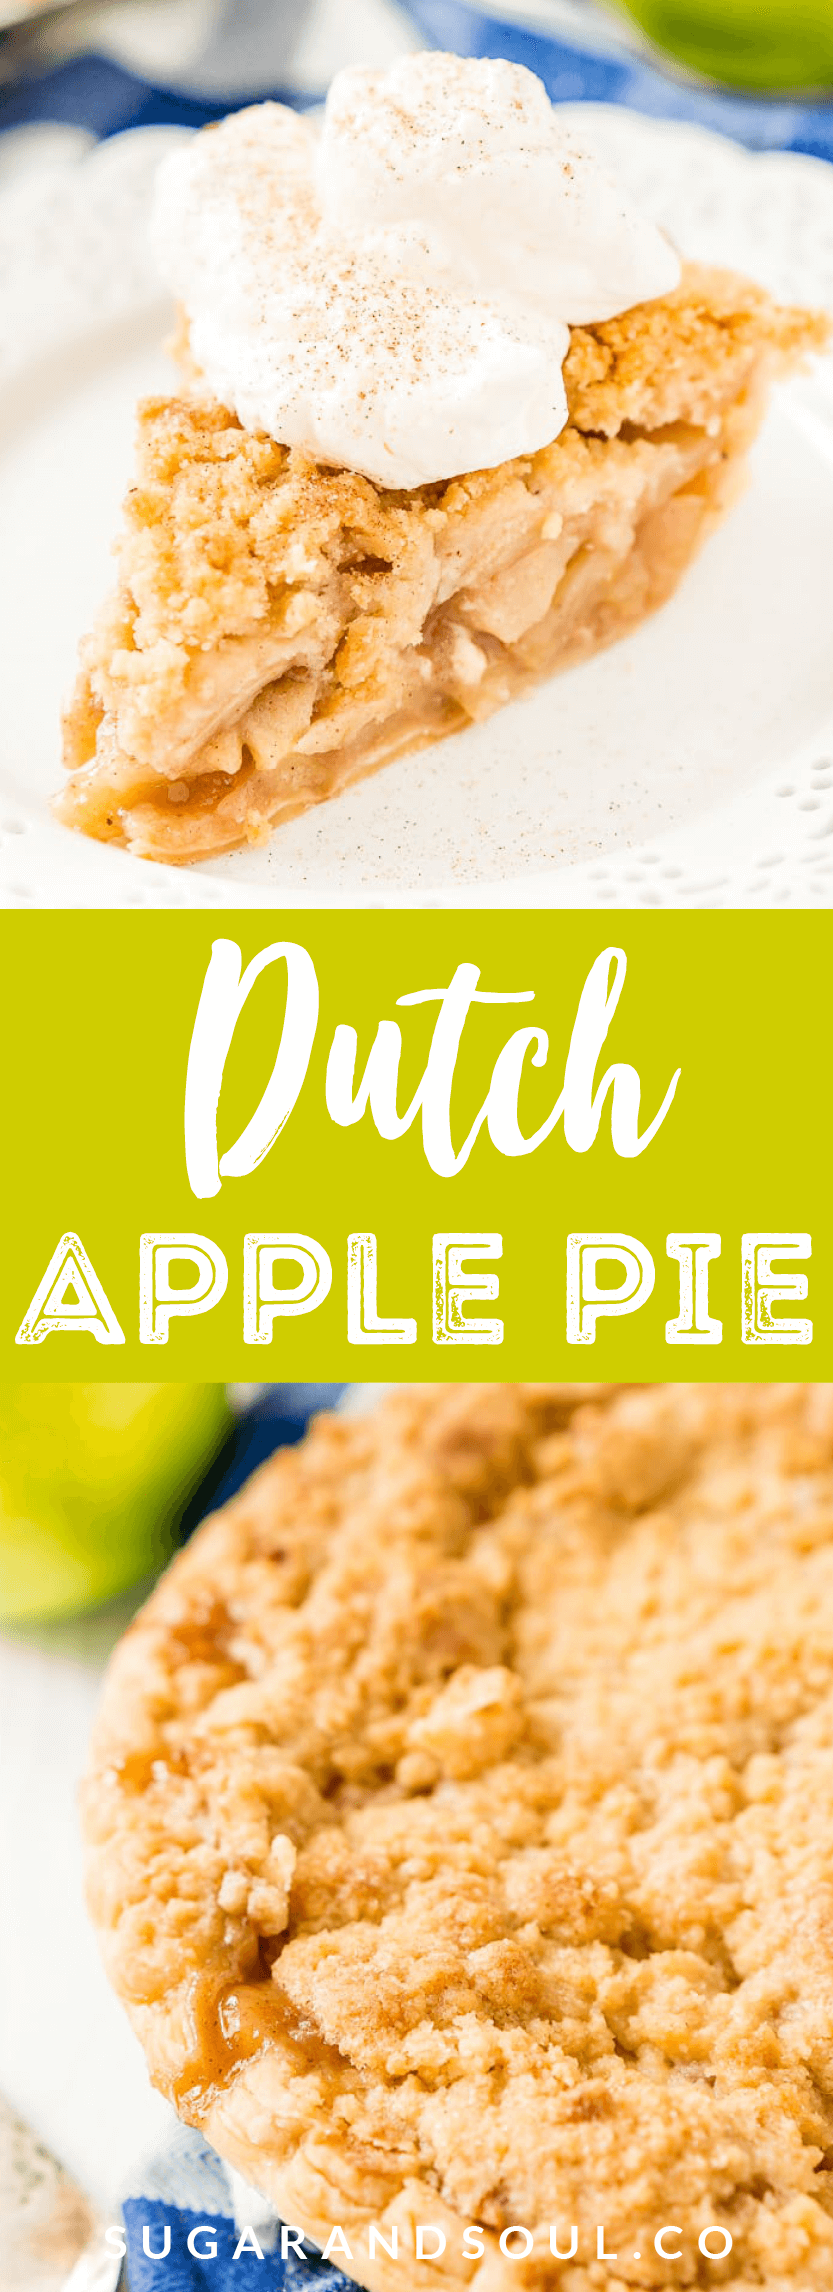 Dutch Apple Pie is made with a spiced apple filling in a flaky pie crust topped with a streusel made of flour, sugar, and butter. via @sugarandsoulco